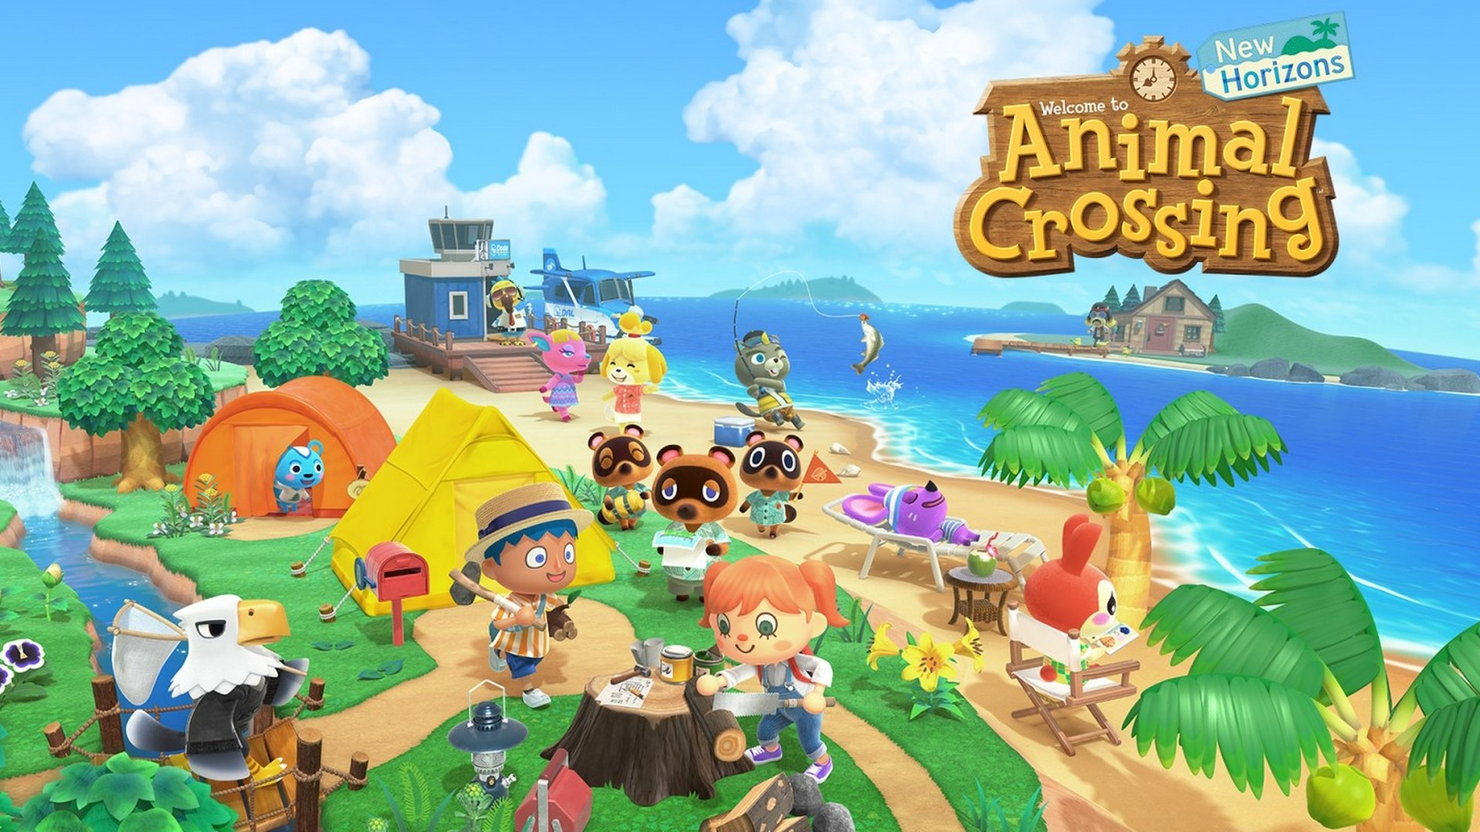 Трейлер игры Animal Crossing: New Horizons